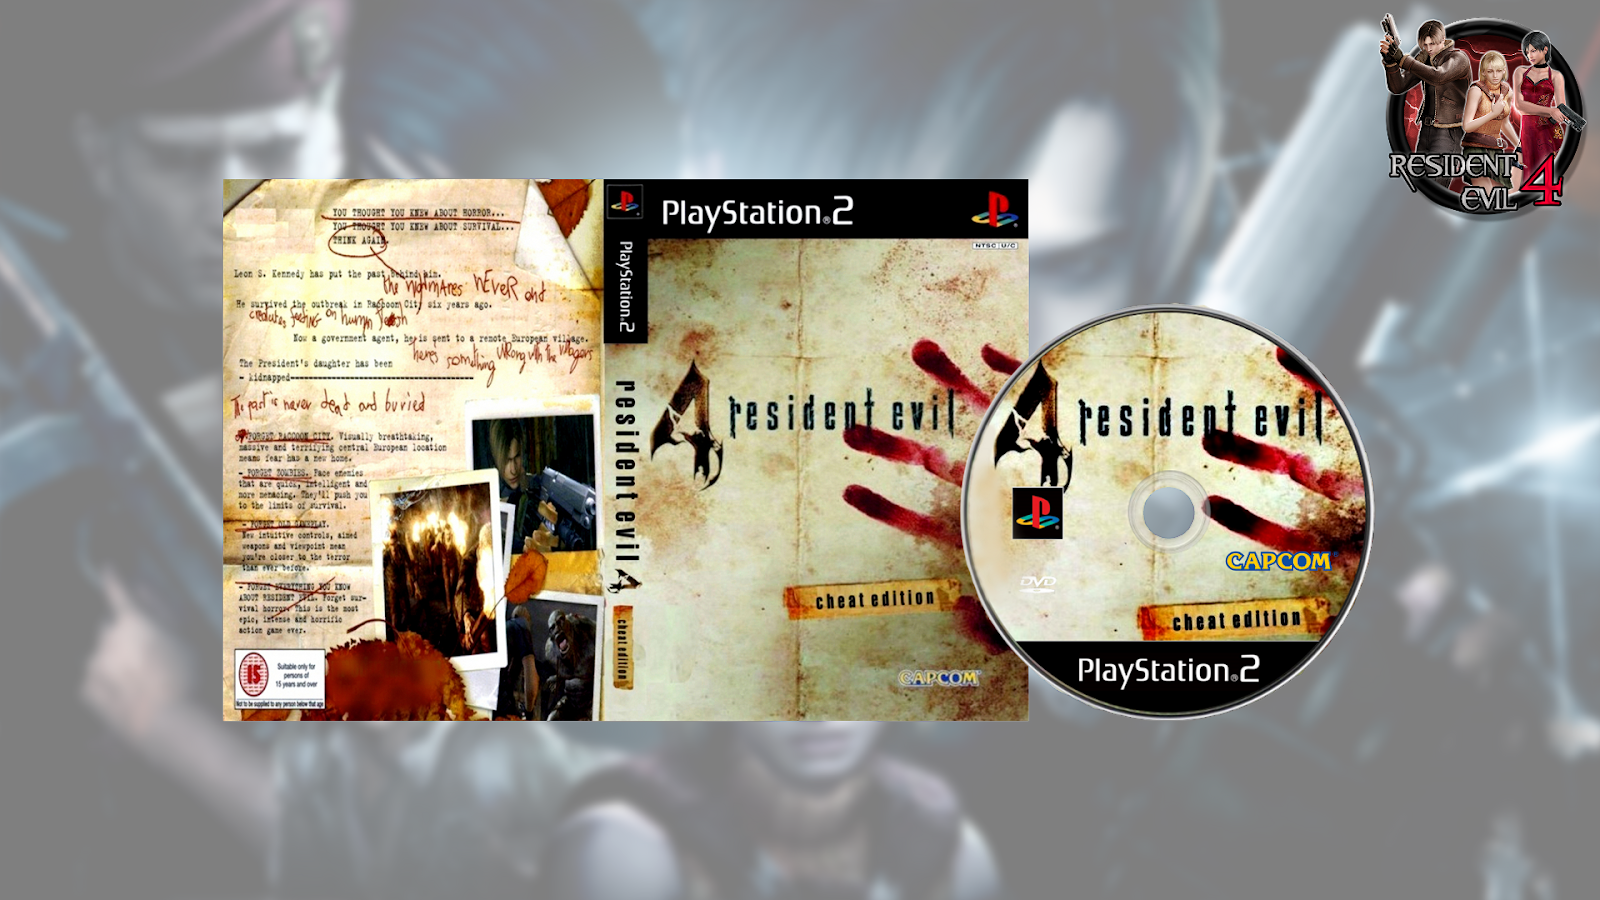 Resident Evil 4 Cheat Edition Ps2 Knowledgefasr